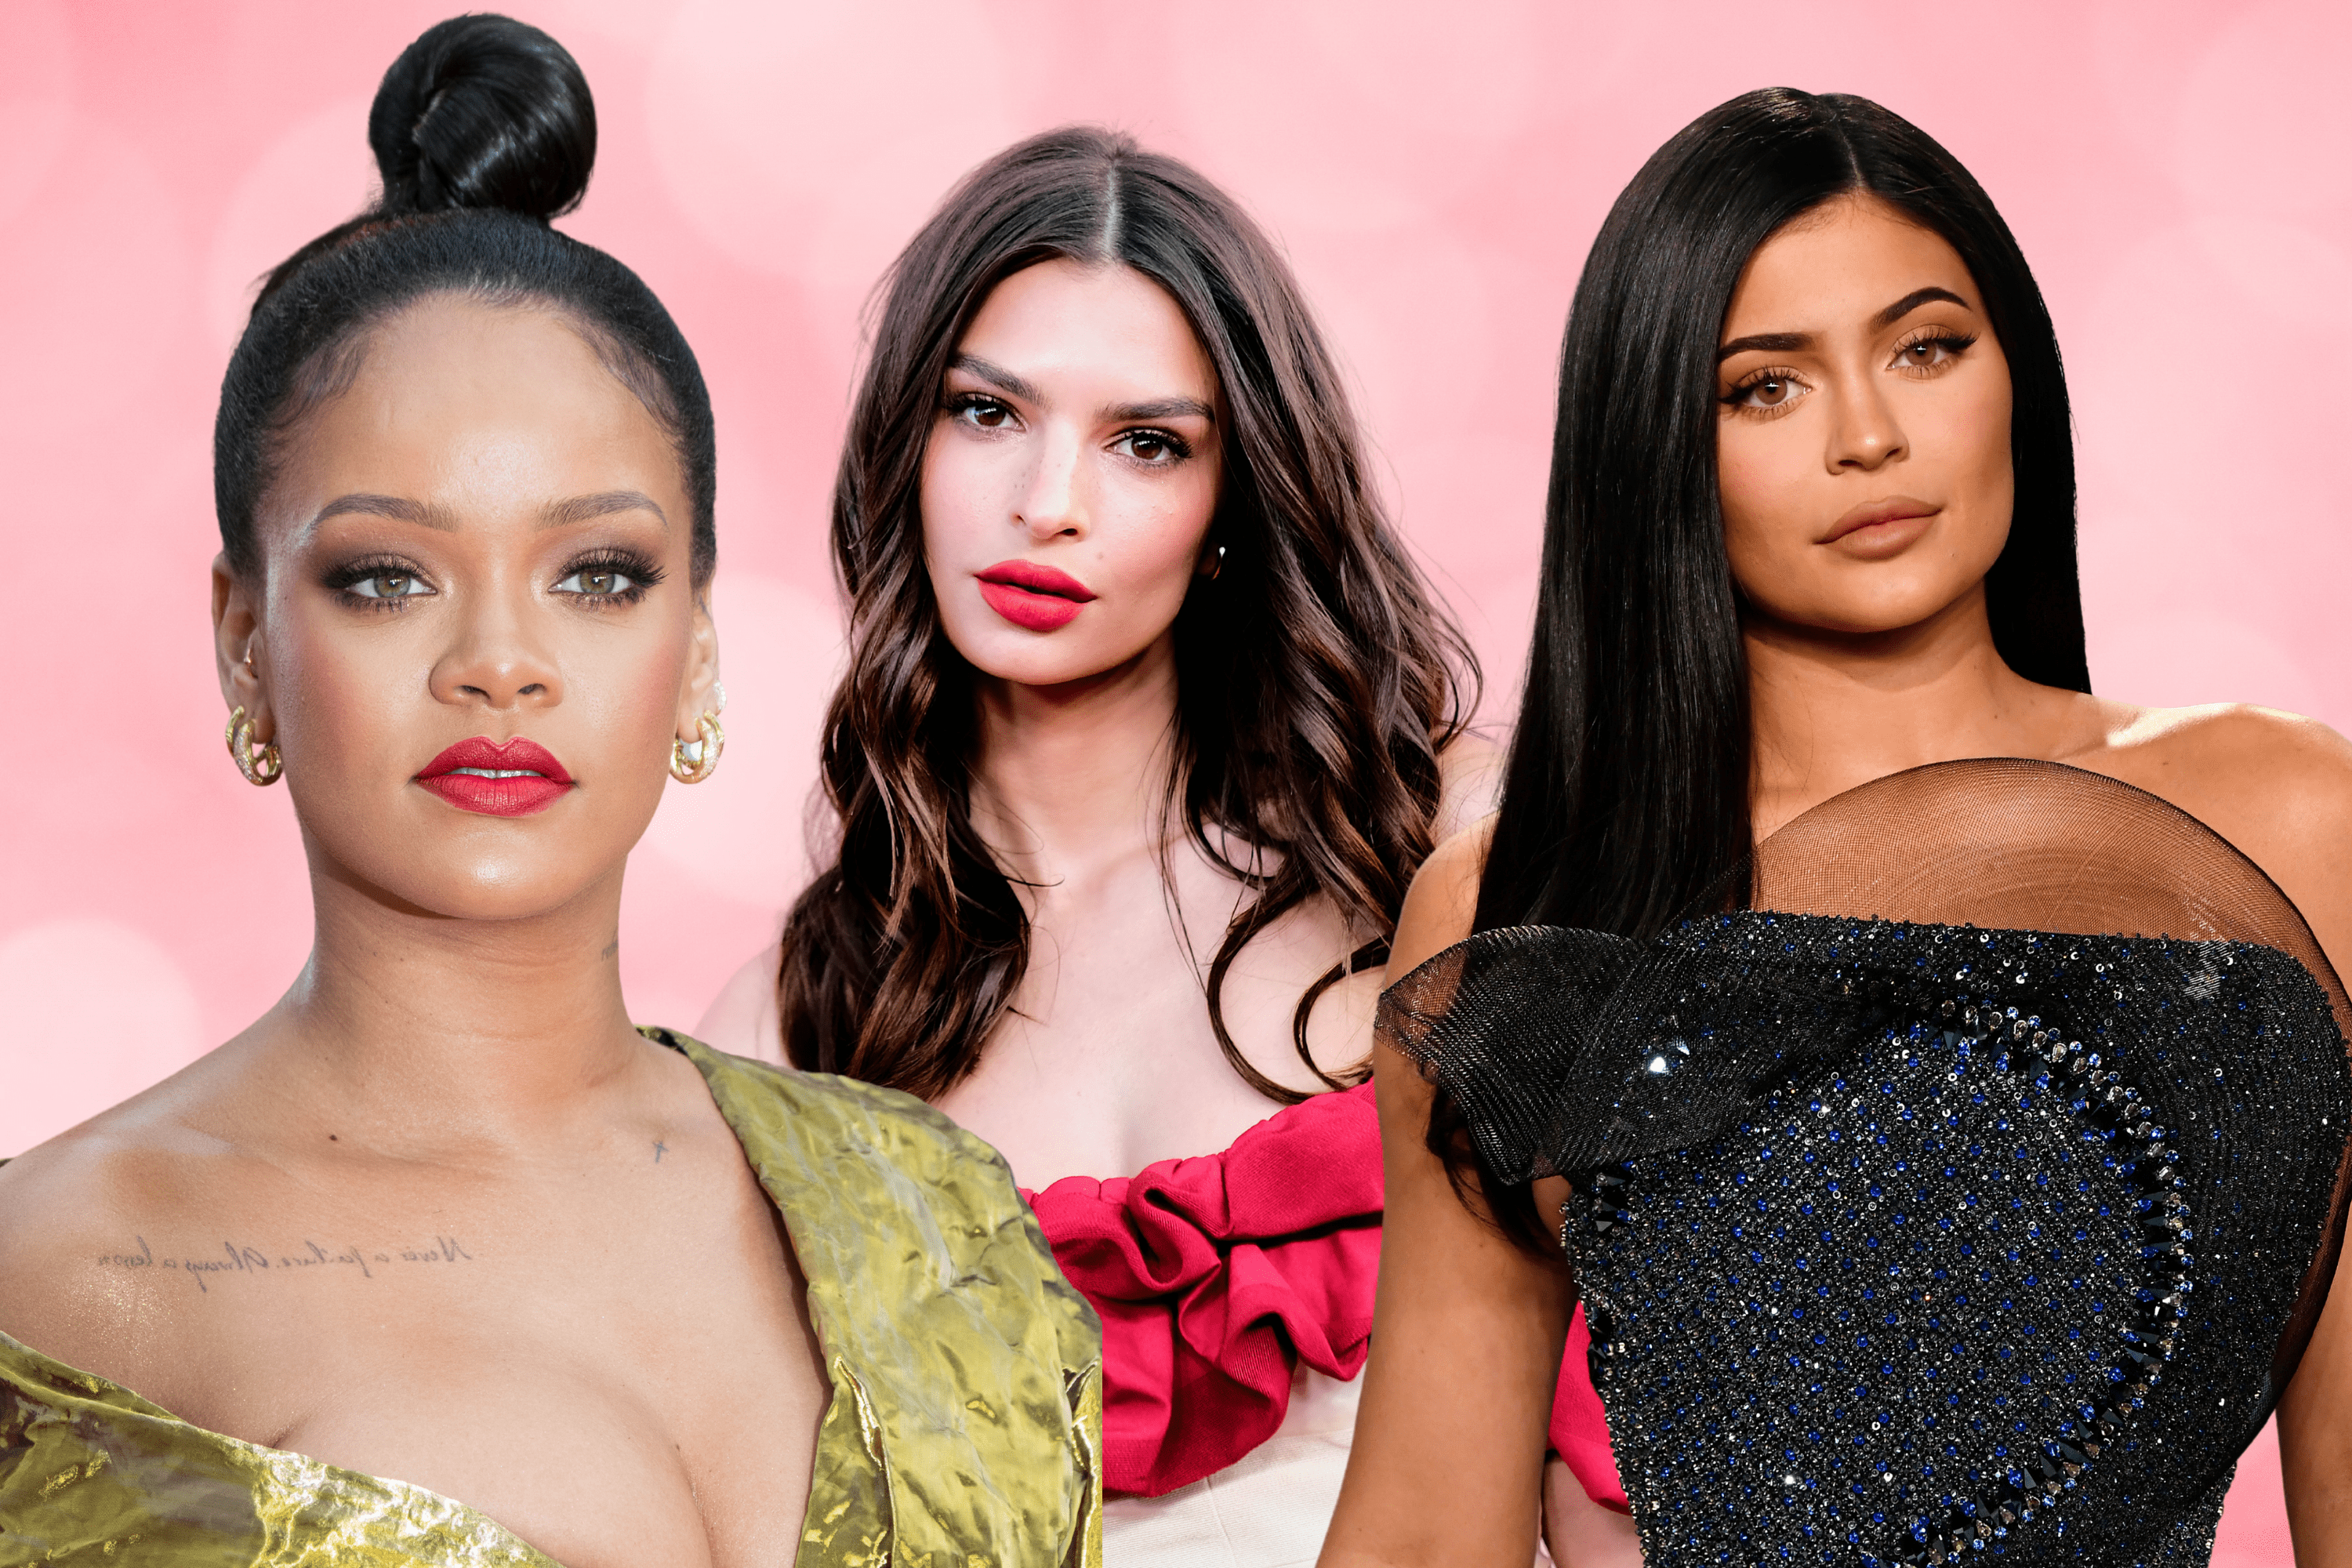 The best Black Friday 2020 deals on celebrity fashion and beauty brands